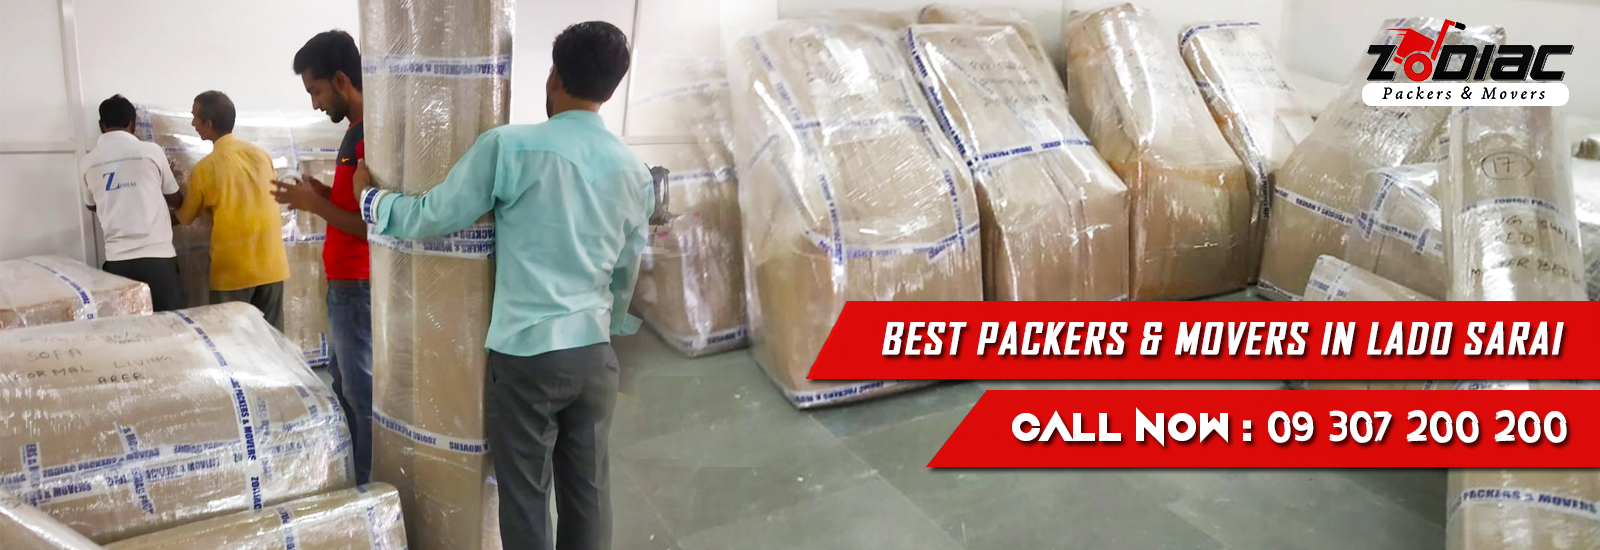 Packers and Movers in Lado Sarai